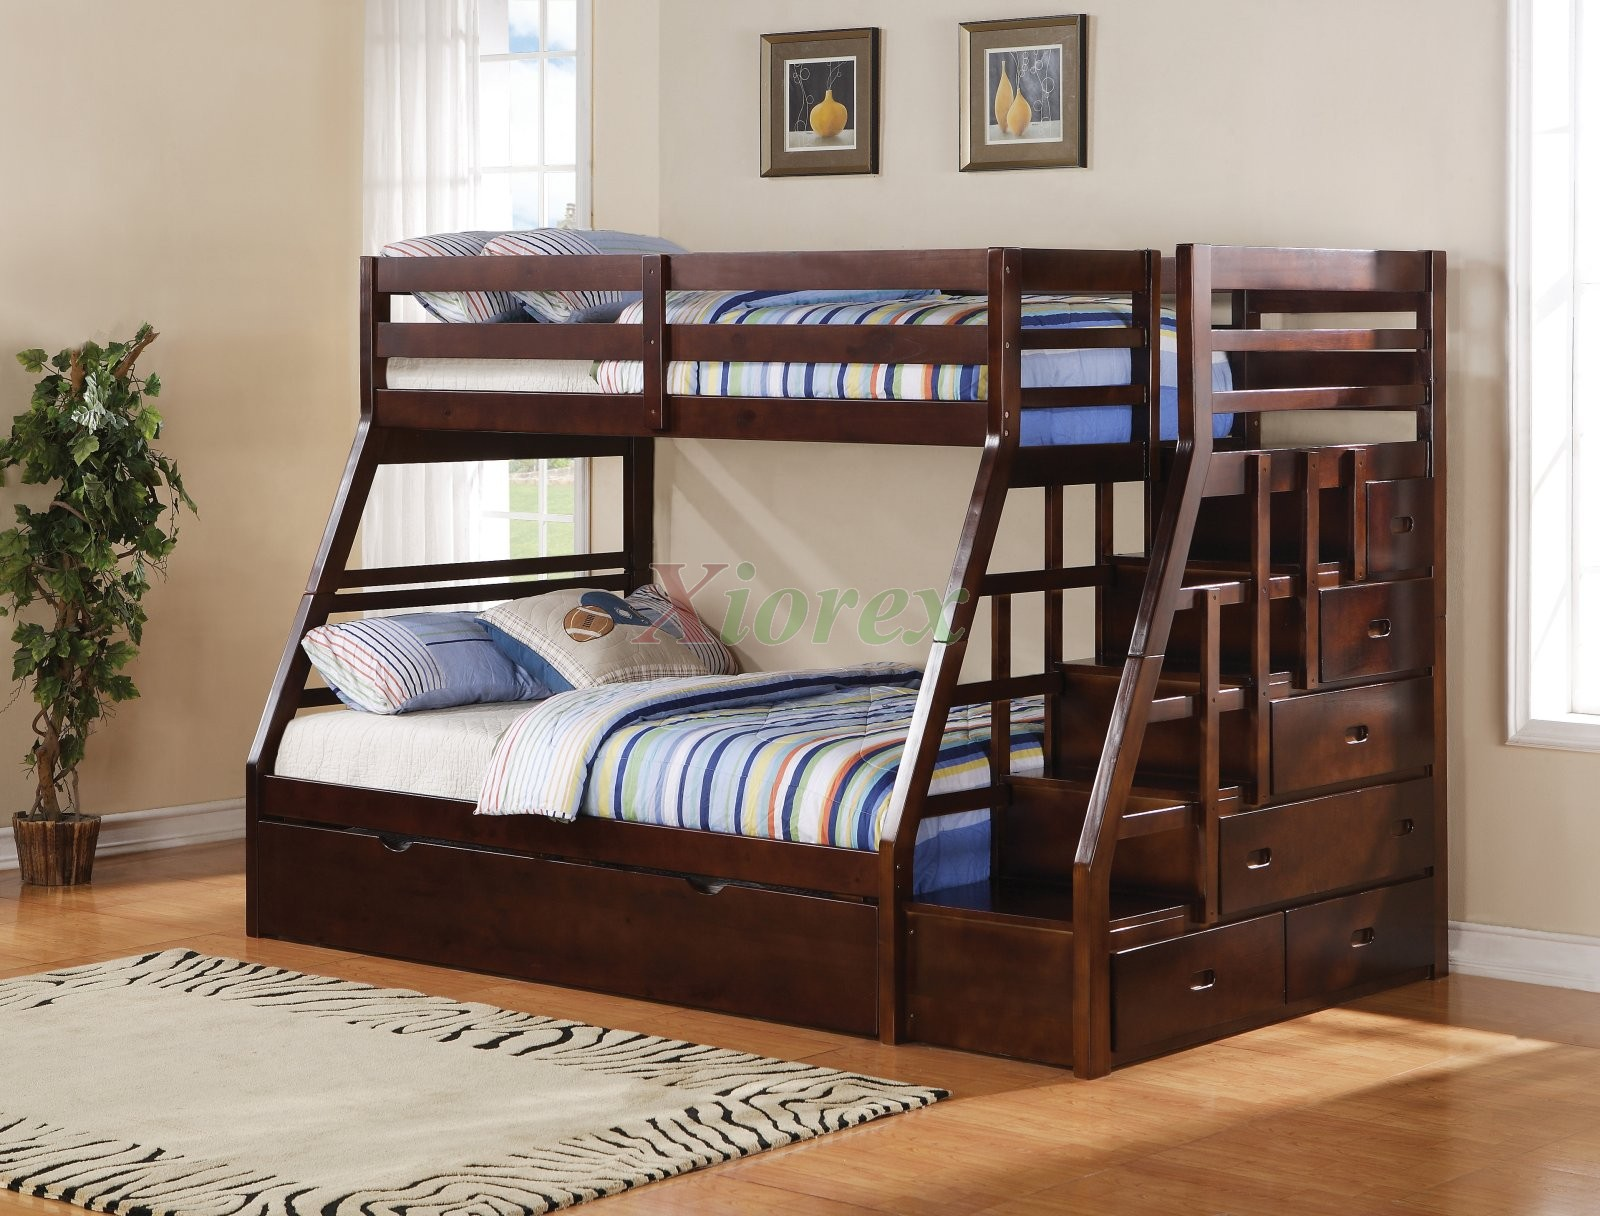 Taurus TwinFull Bunk Bed with Stairs and Trundle in  : kidsbunkbedstorontocalgaryvancouverbcedmontonottawaxiorex from www.xiorex.com size 1600 x 1216 jpeg 359kB